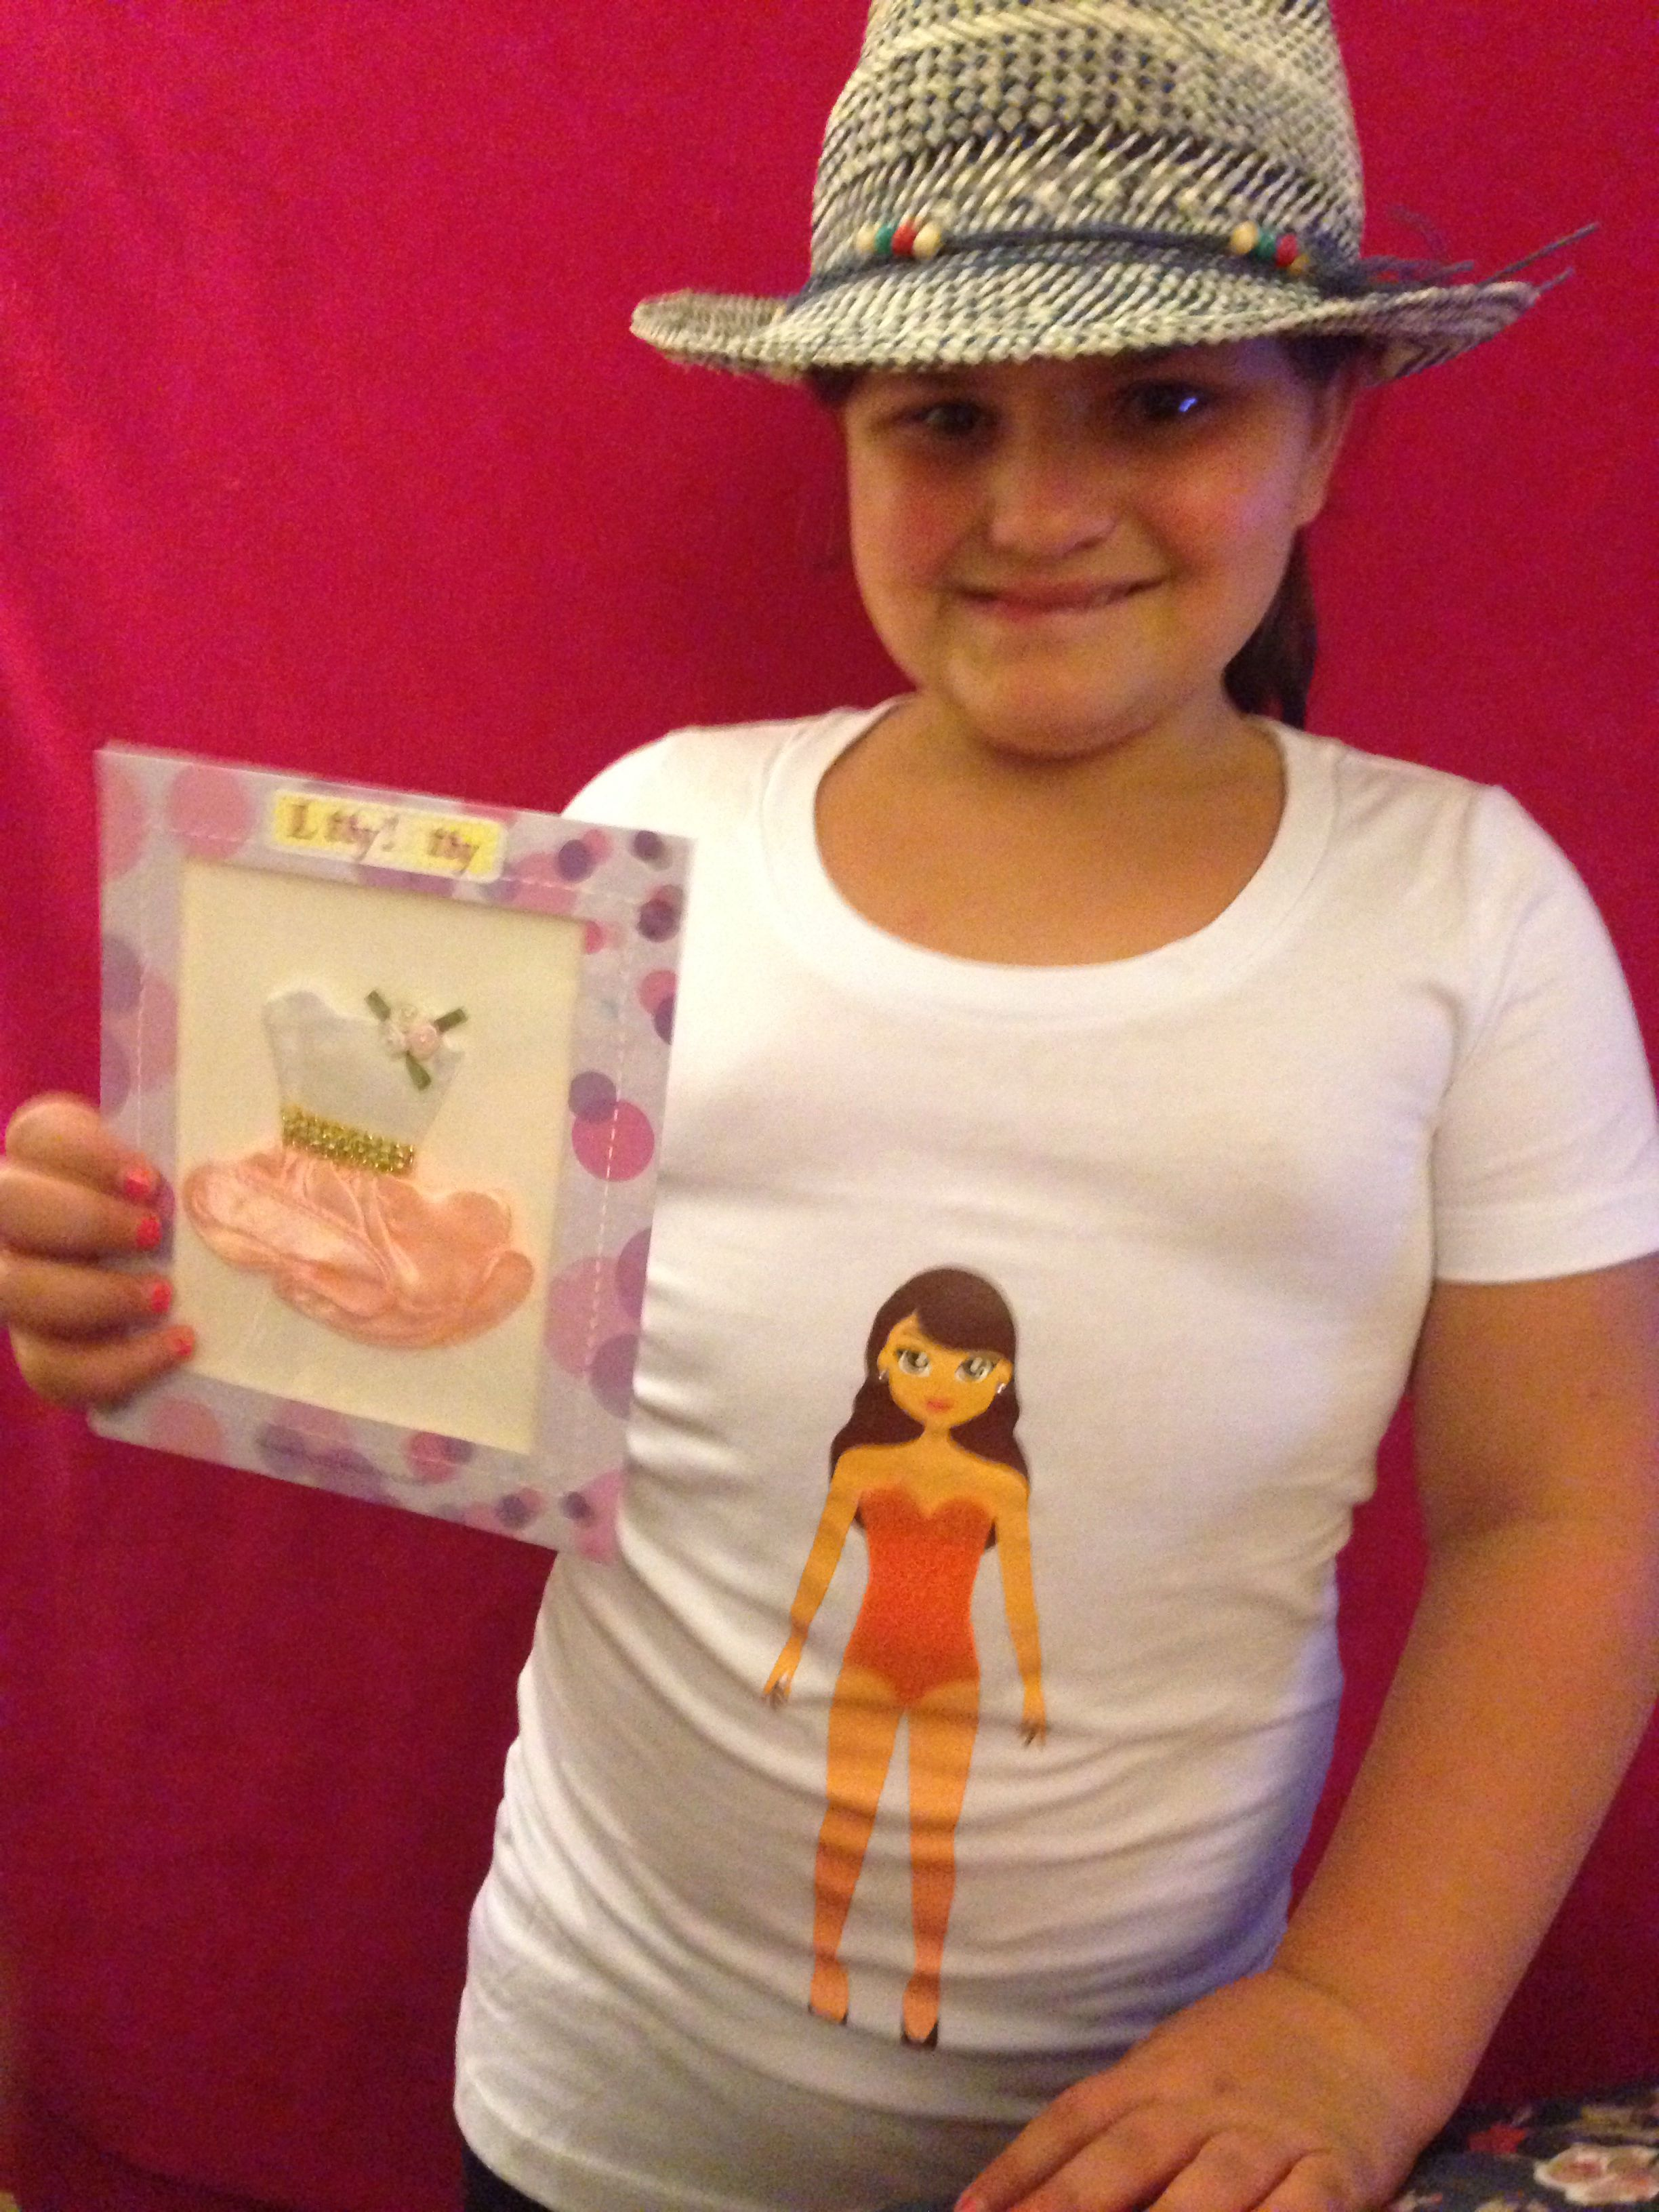 Fun new fashion Paper dolls you can wear by Lotty Dotty Check them out at www.justmeandgi.com So fun your kids are gonna love !!